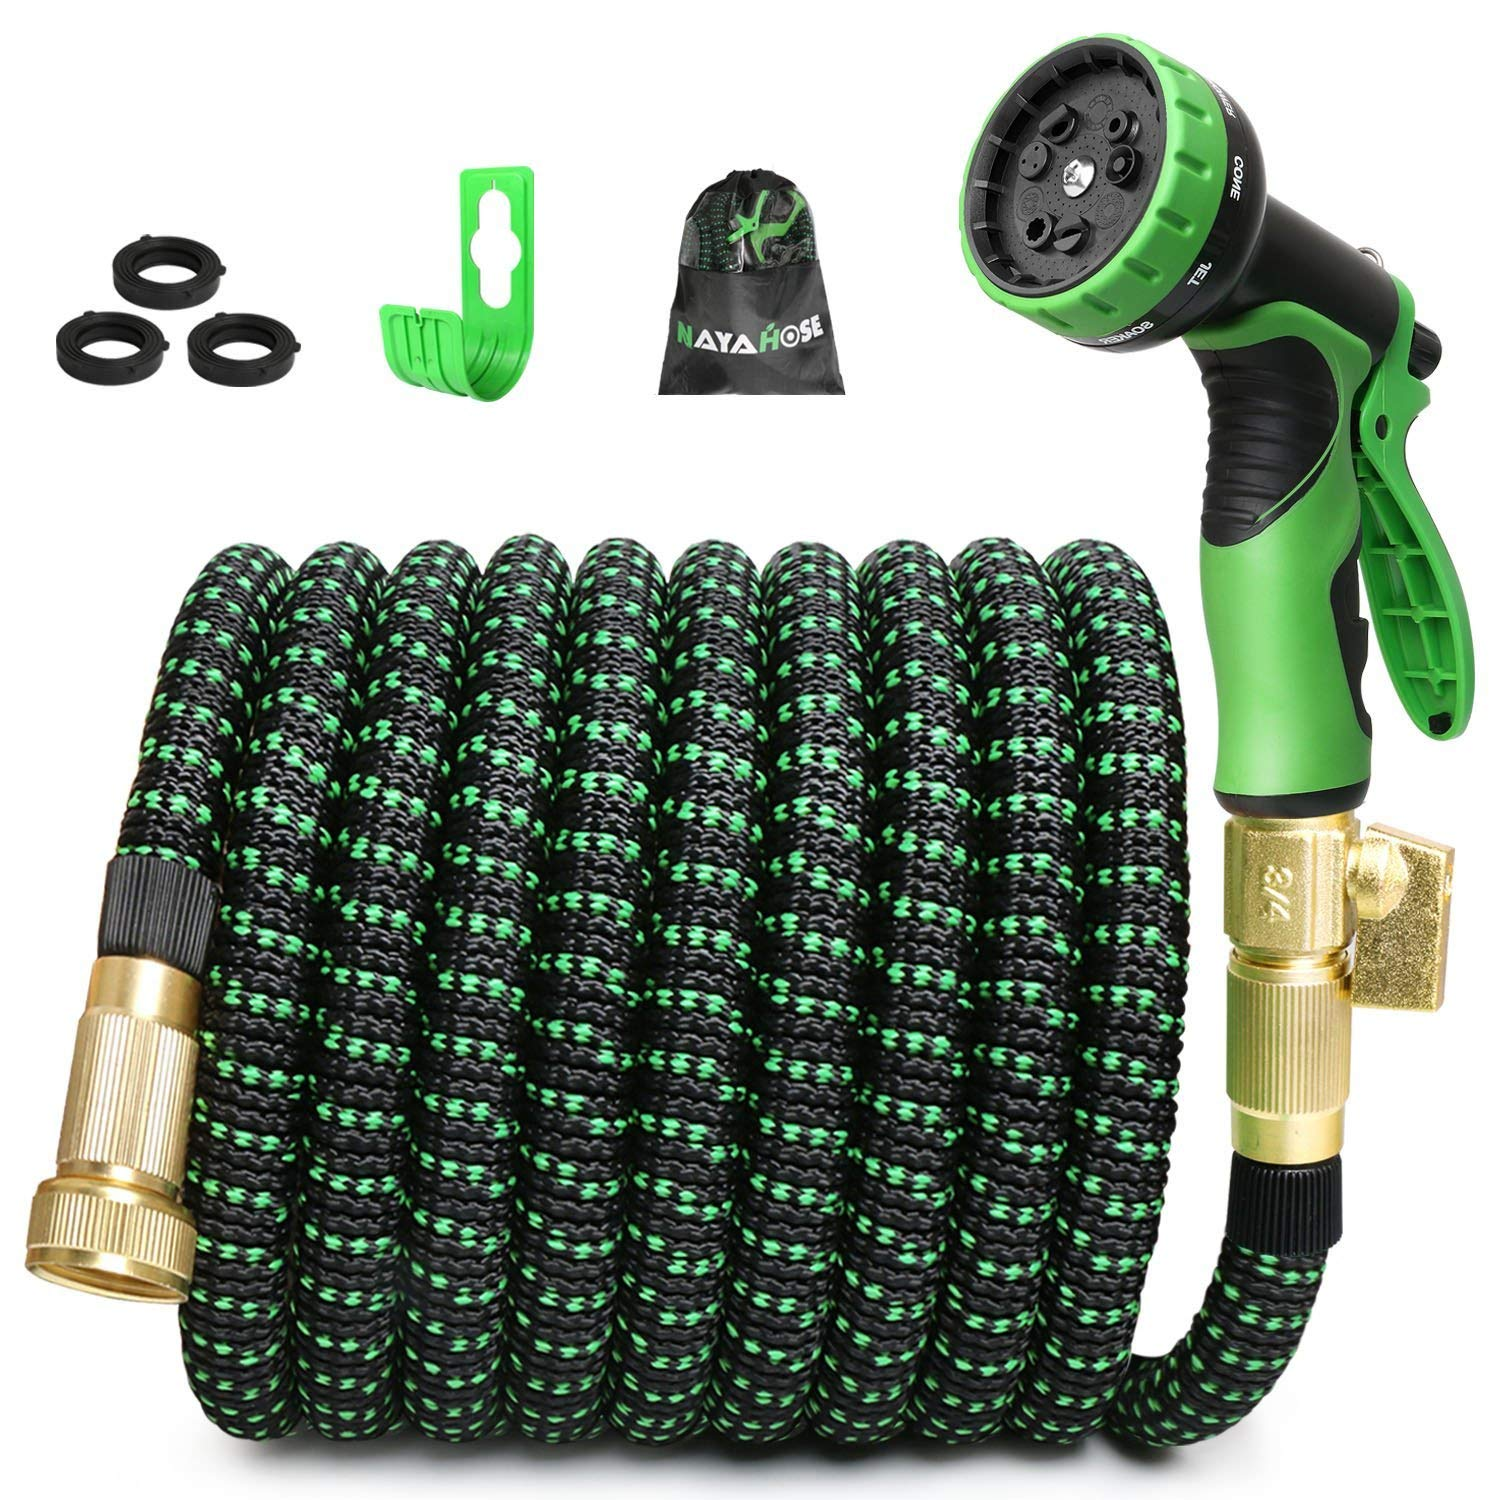 "NAYAHOSE 75ft Expandable Garden Hose,Expanding Water Hose with 3/4"" Solid Brass, 75' Expandable Hose Outdoor Gardening Hose with 9 Function Nozzle, Flexible Lightweight Hose Yard Hoses, No-Kink"